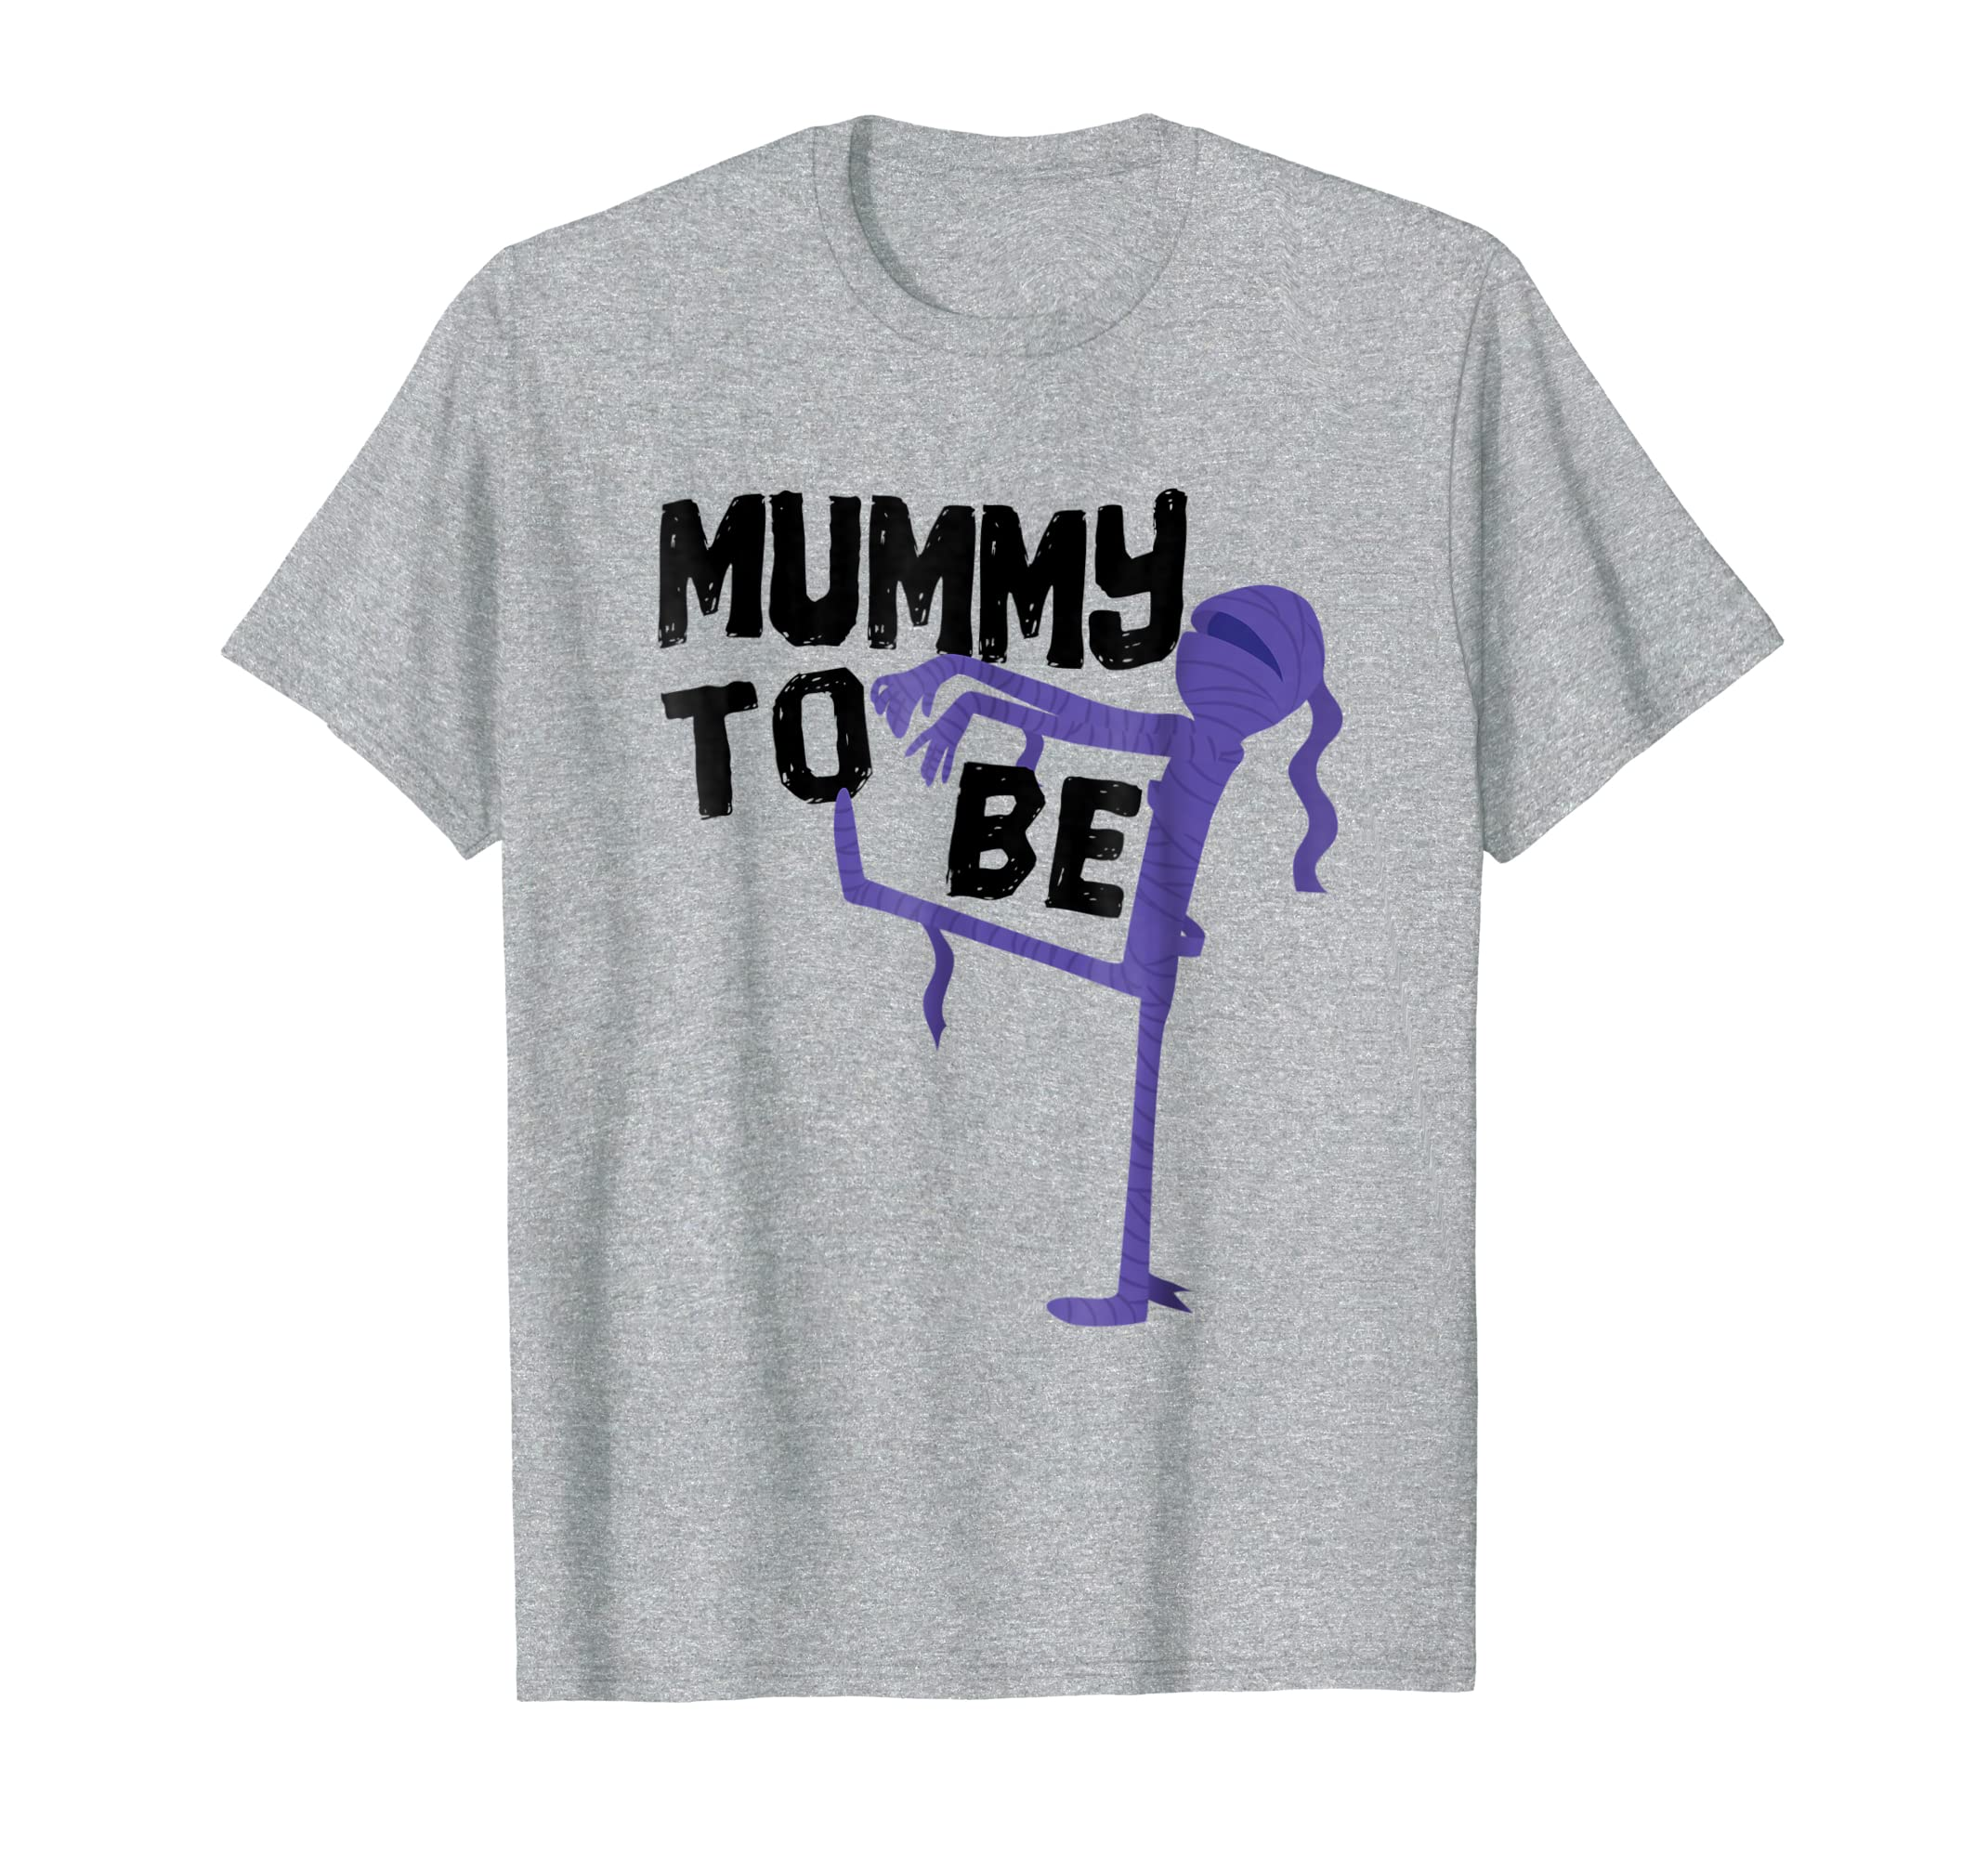 Baby Shower Mummy To Be T-shirt Pregnancy Announcement Gift-mt